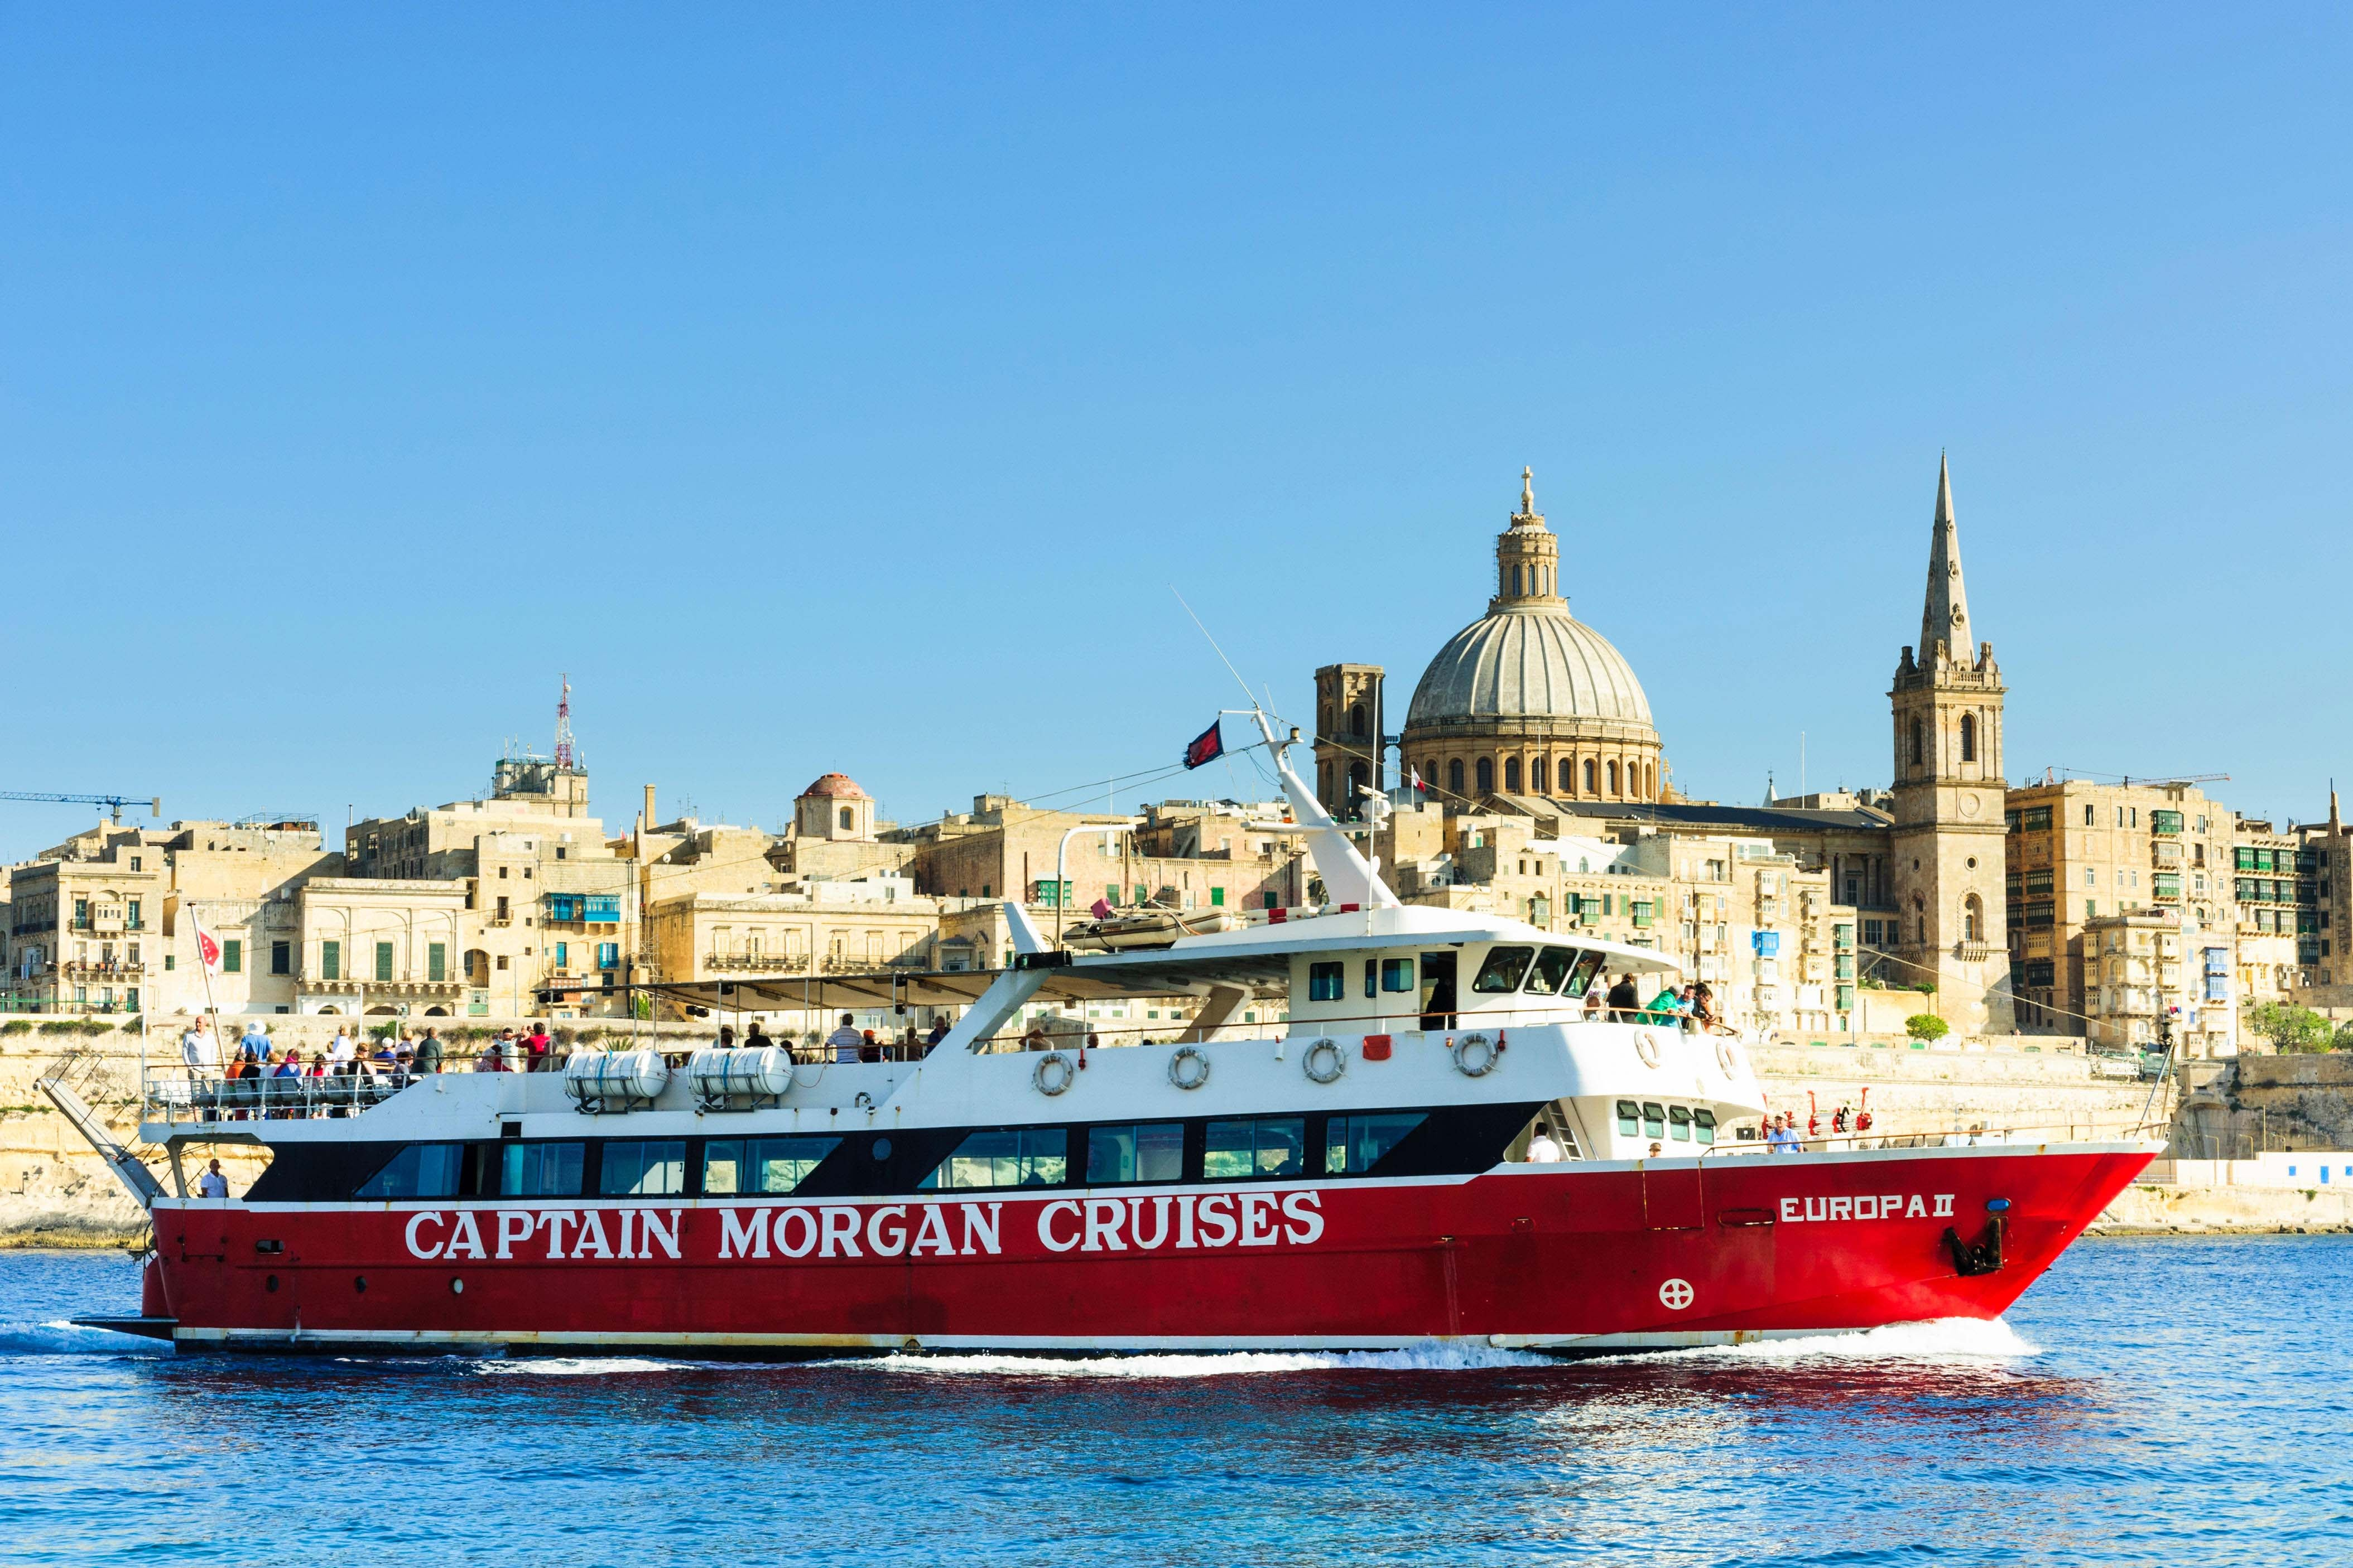 The Europa II, a tourist ferry sets sail from Marsamxett Harbour, Valletta, Malta.